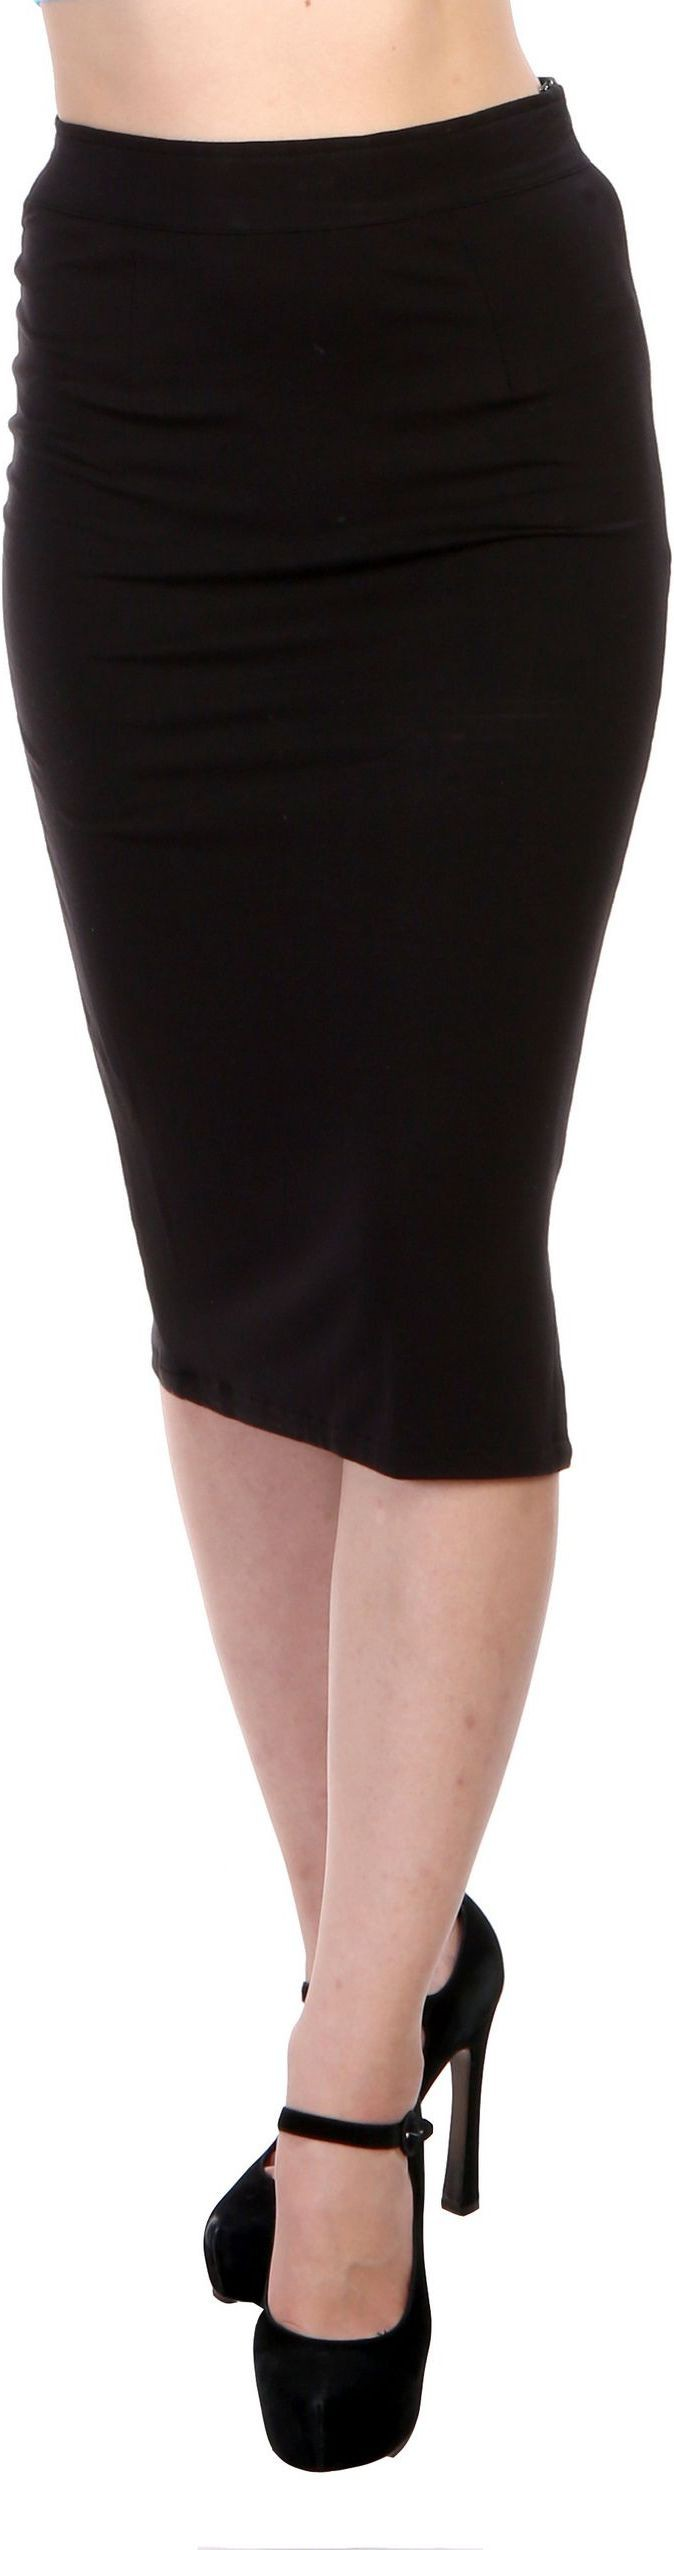 Deals - Gwalior - Only, People... <br> Skirts<br> Category - clothing<br> Business - Flipkart.com